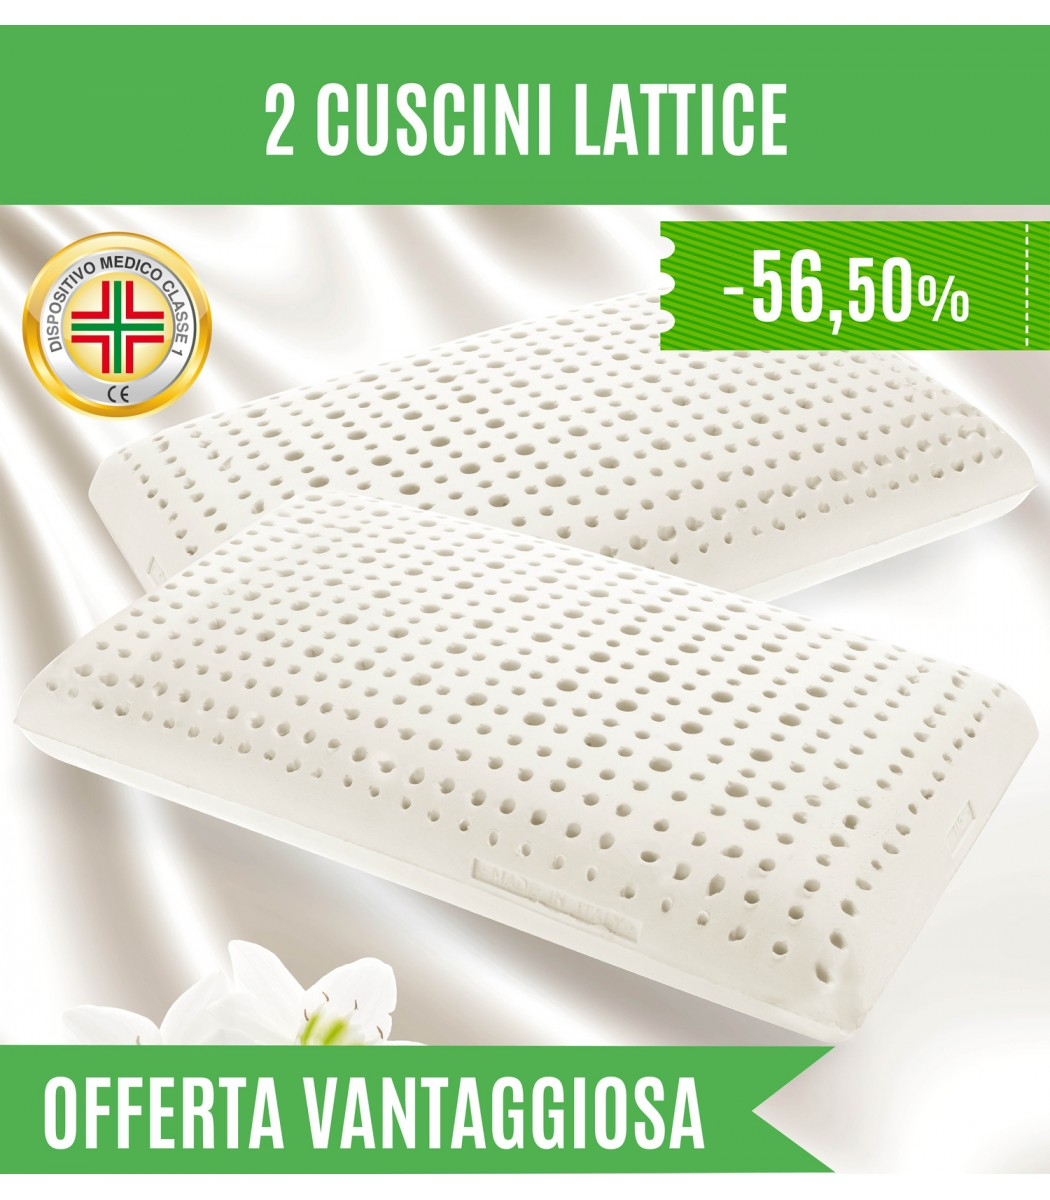 Lattice Cuscini.Offerta Cuscini Lattice